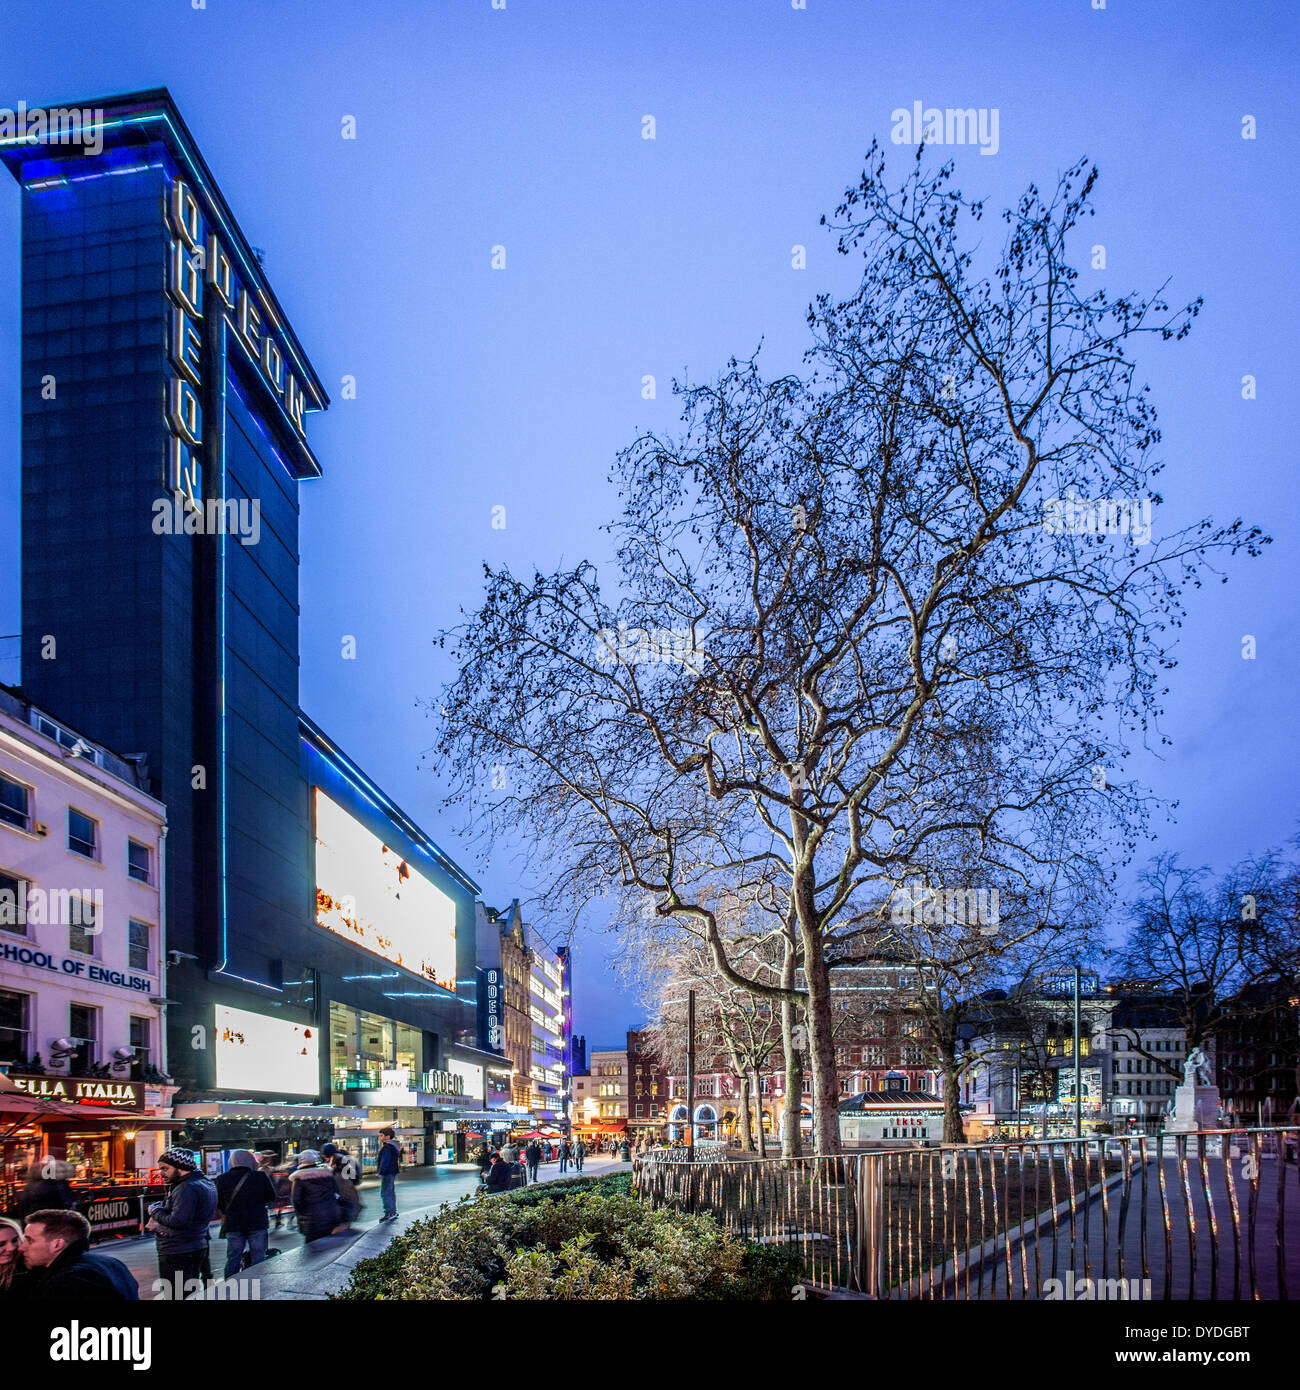 The Odeon Leicester Square at dusk. - Stock Image